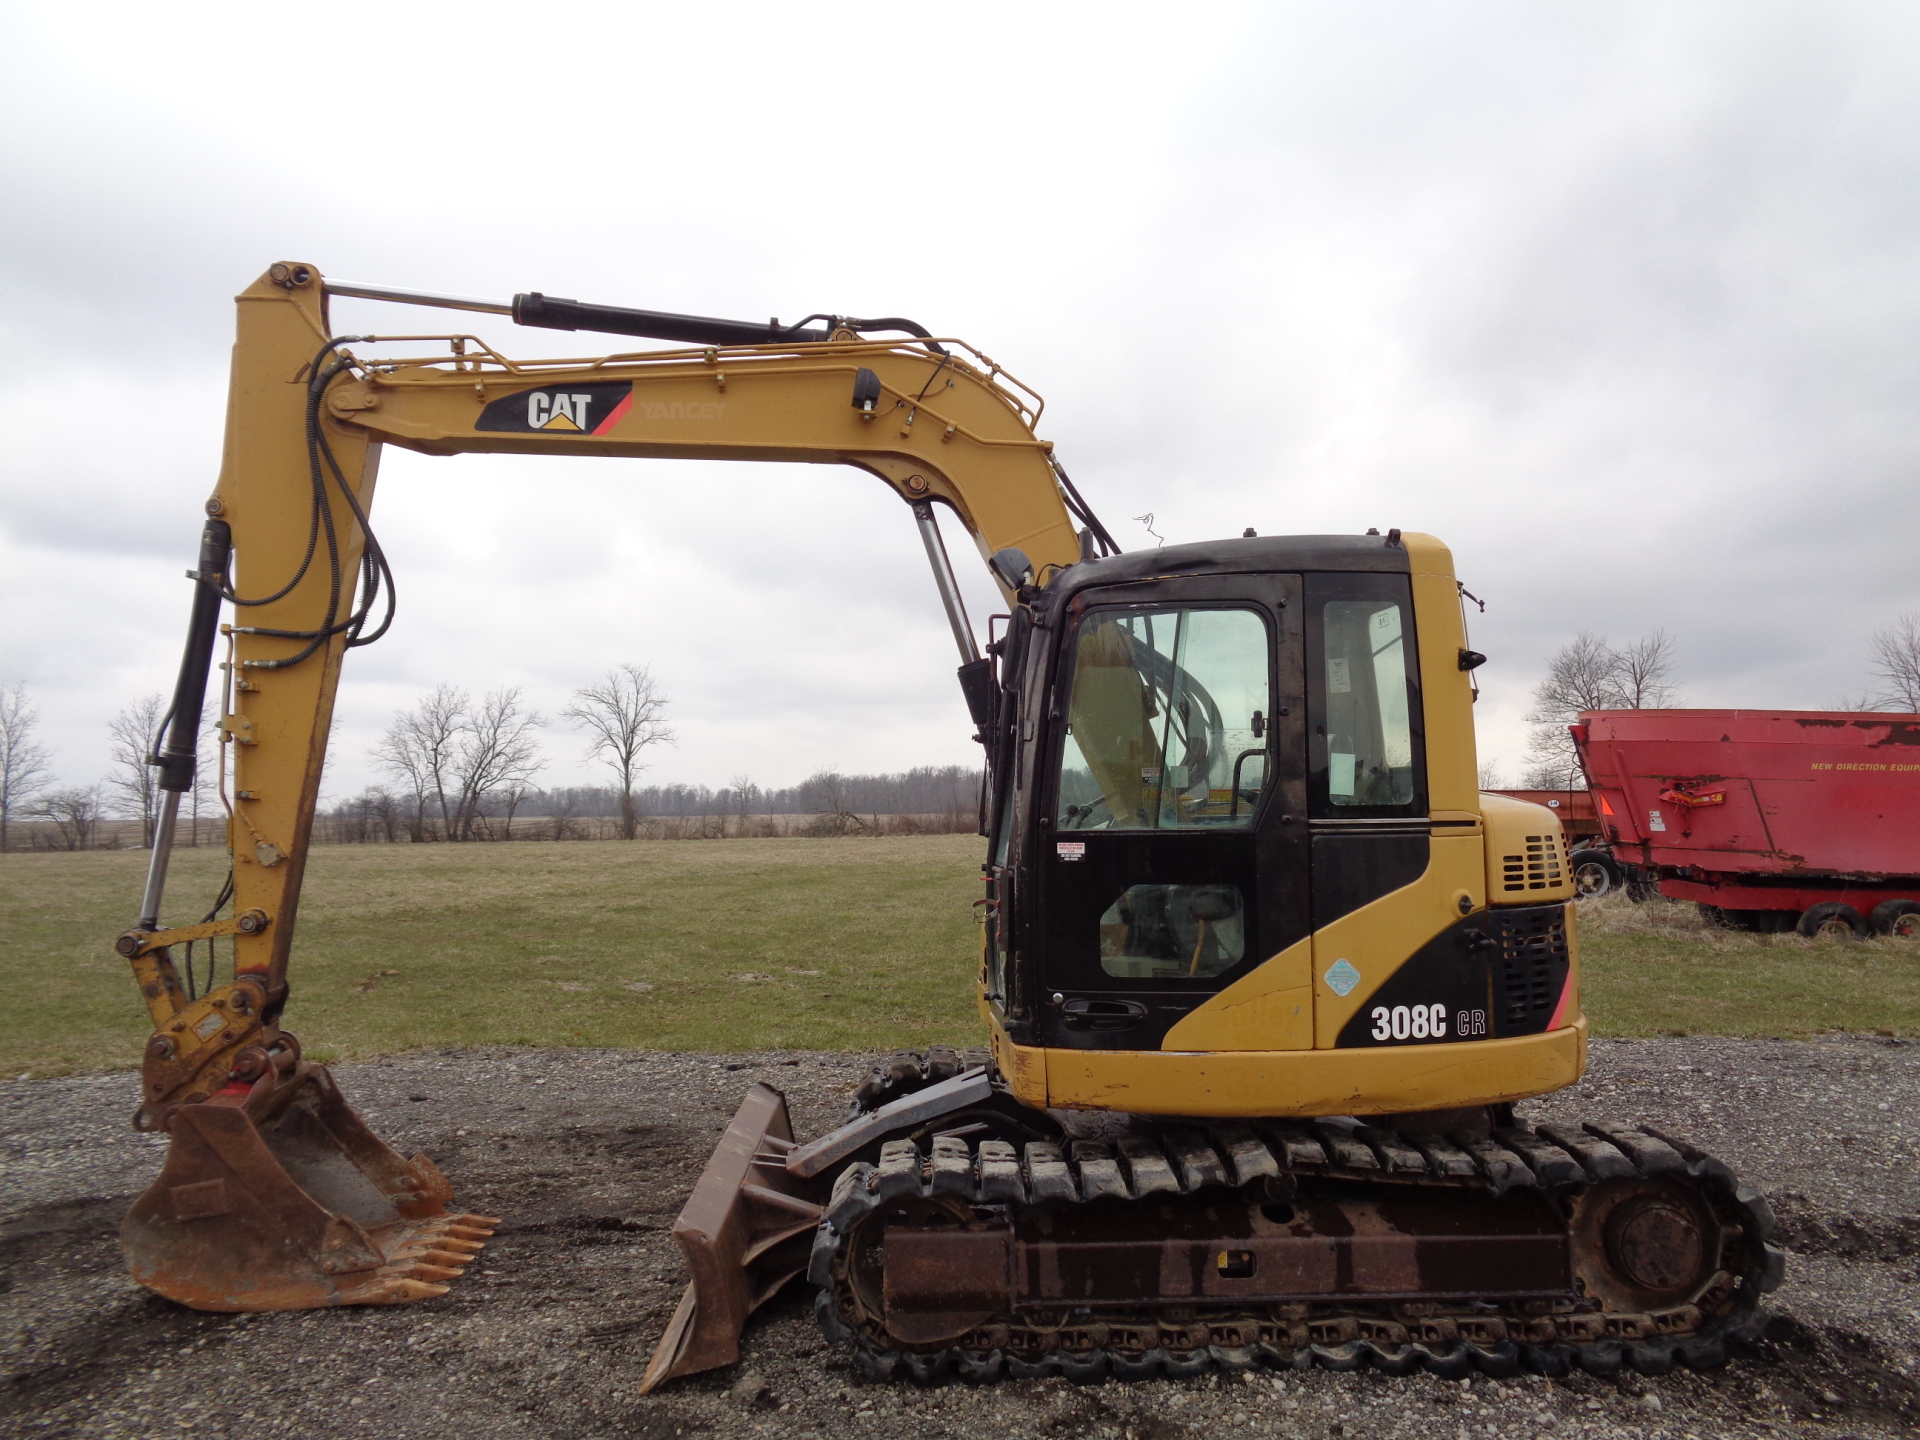 2007 Caterpillar 308C CR    $33,900